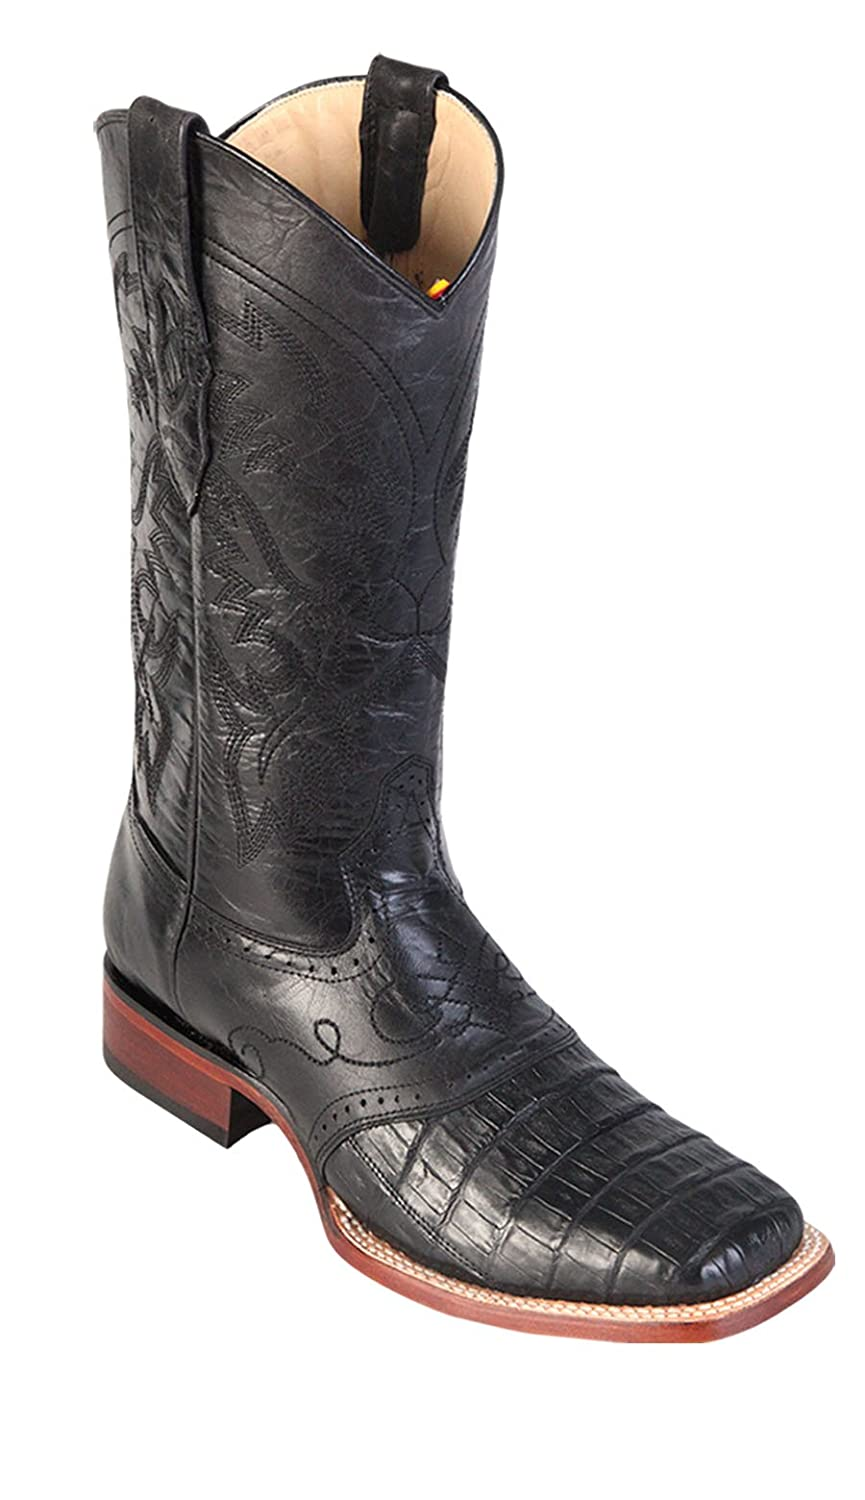 Men's Wide Square Toe Black Cherry Genuine Leather Caiman Belly w/ Saddle Skin Western Boots